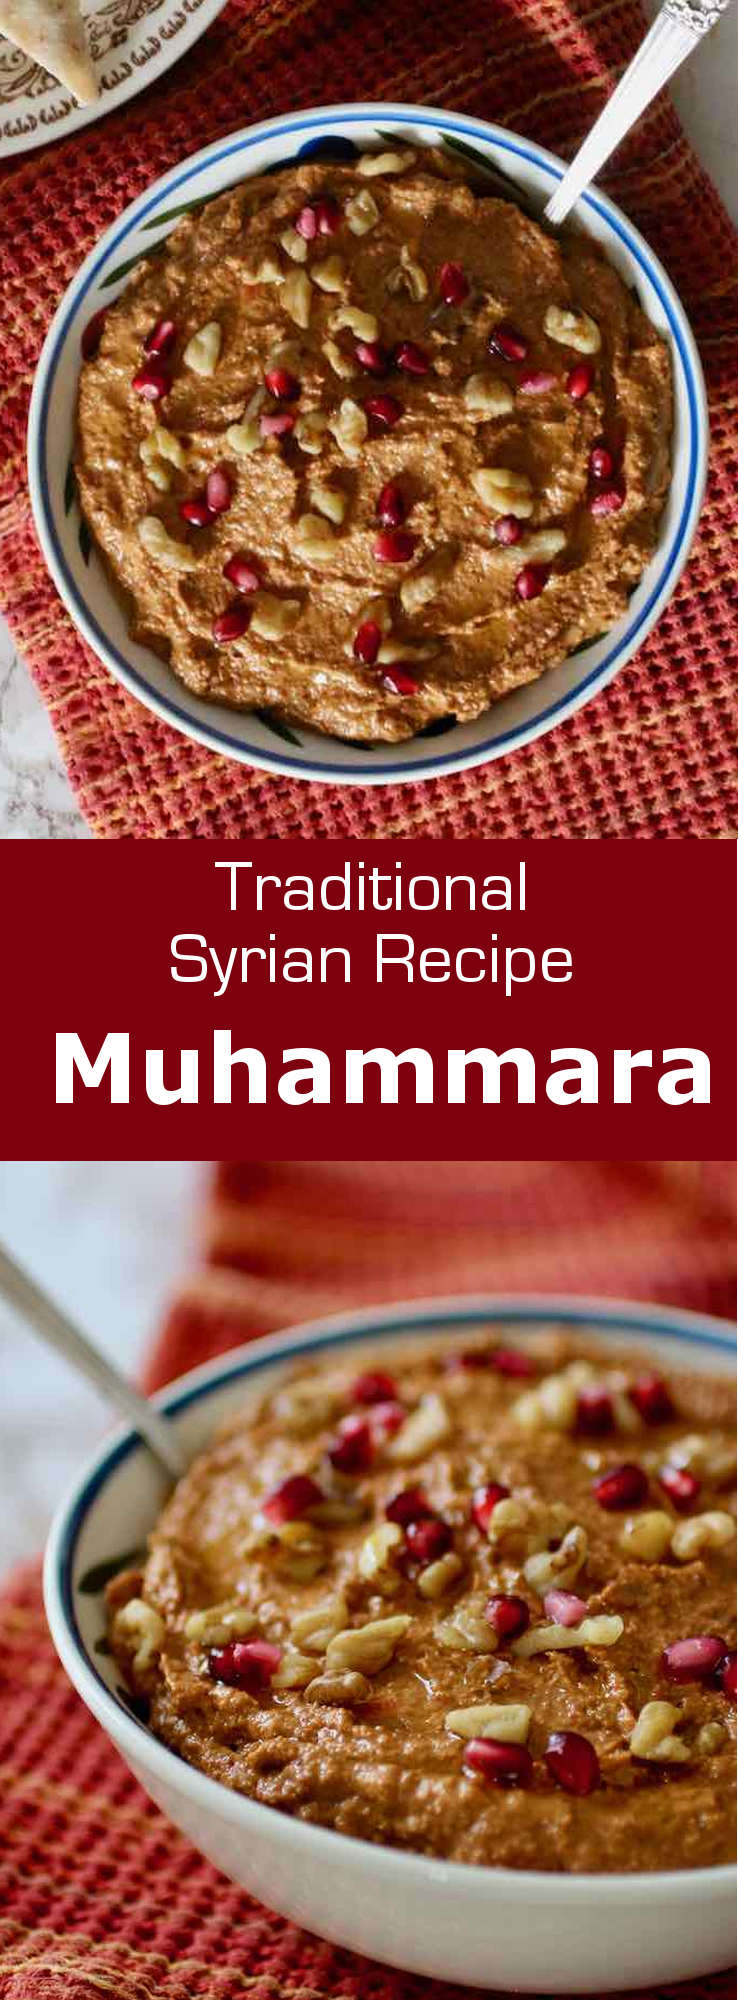 Muhammara is a traditional spicy Syrian dip full of flavors from Aleppo pepper, walnuts, pomegranate and garlic that is typically eaten with flat bread.